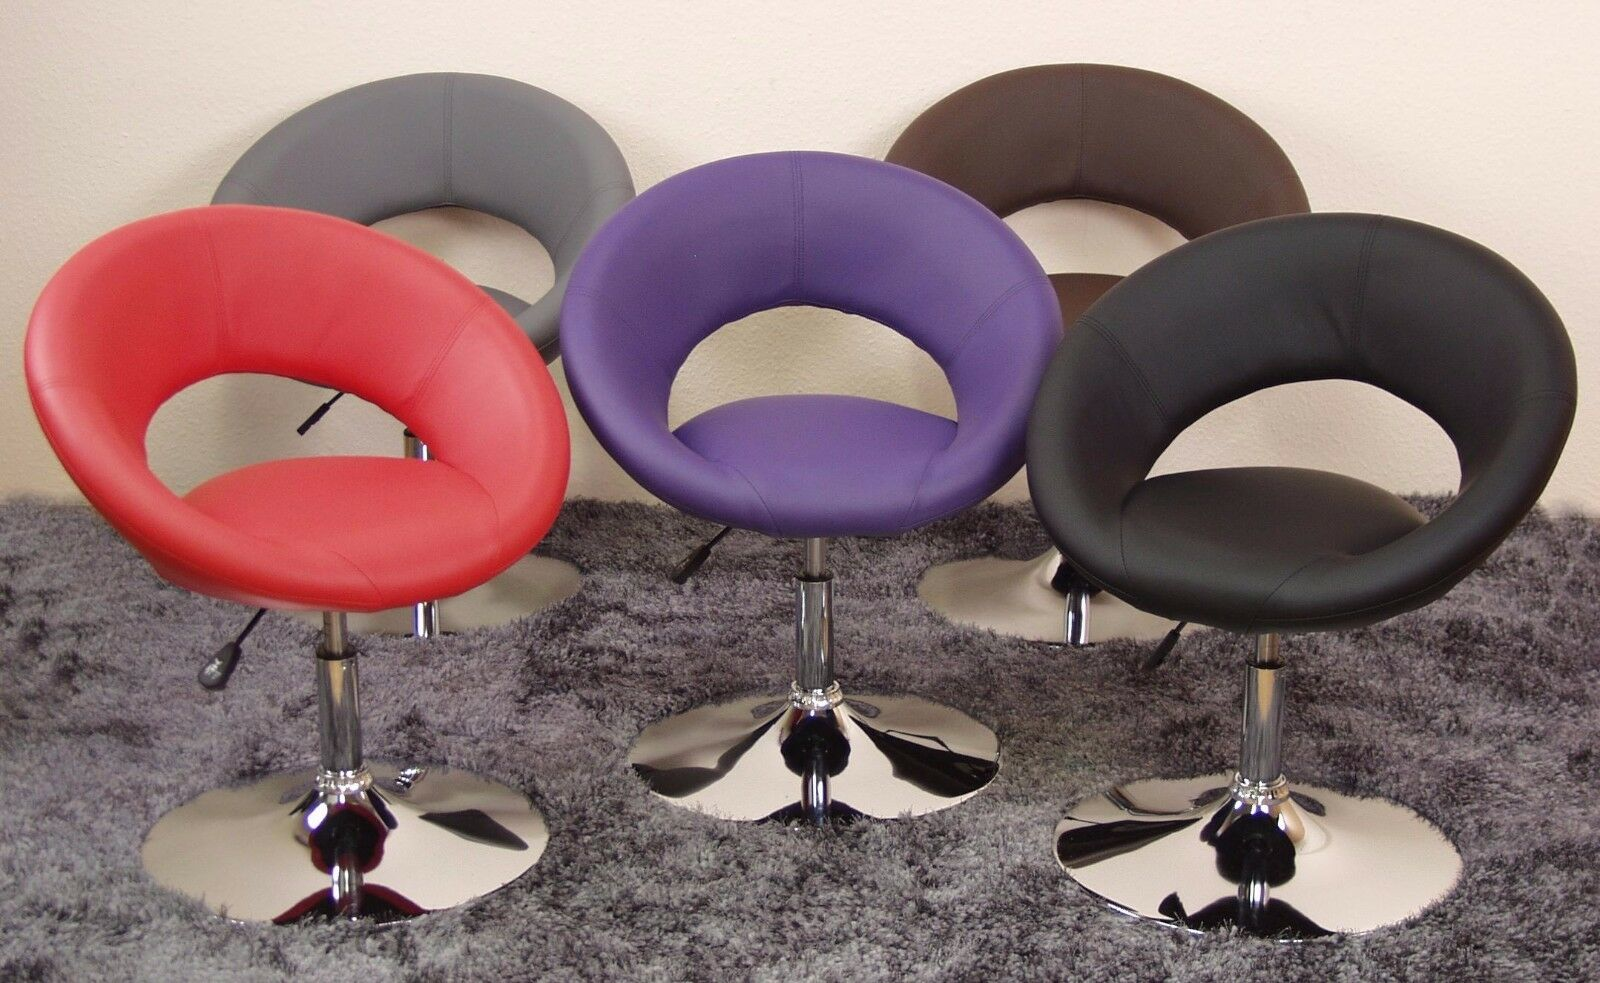 Drehsessel Rot Drehsessel Rot Chrom Cocktailsessel Sessel Clubsessel Lounge Barhocker Design